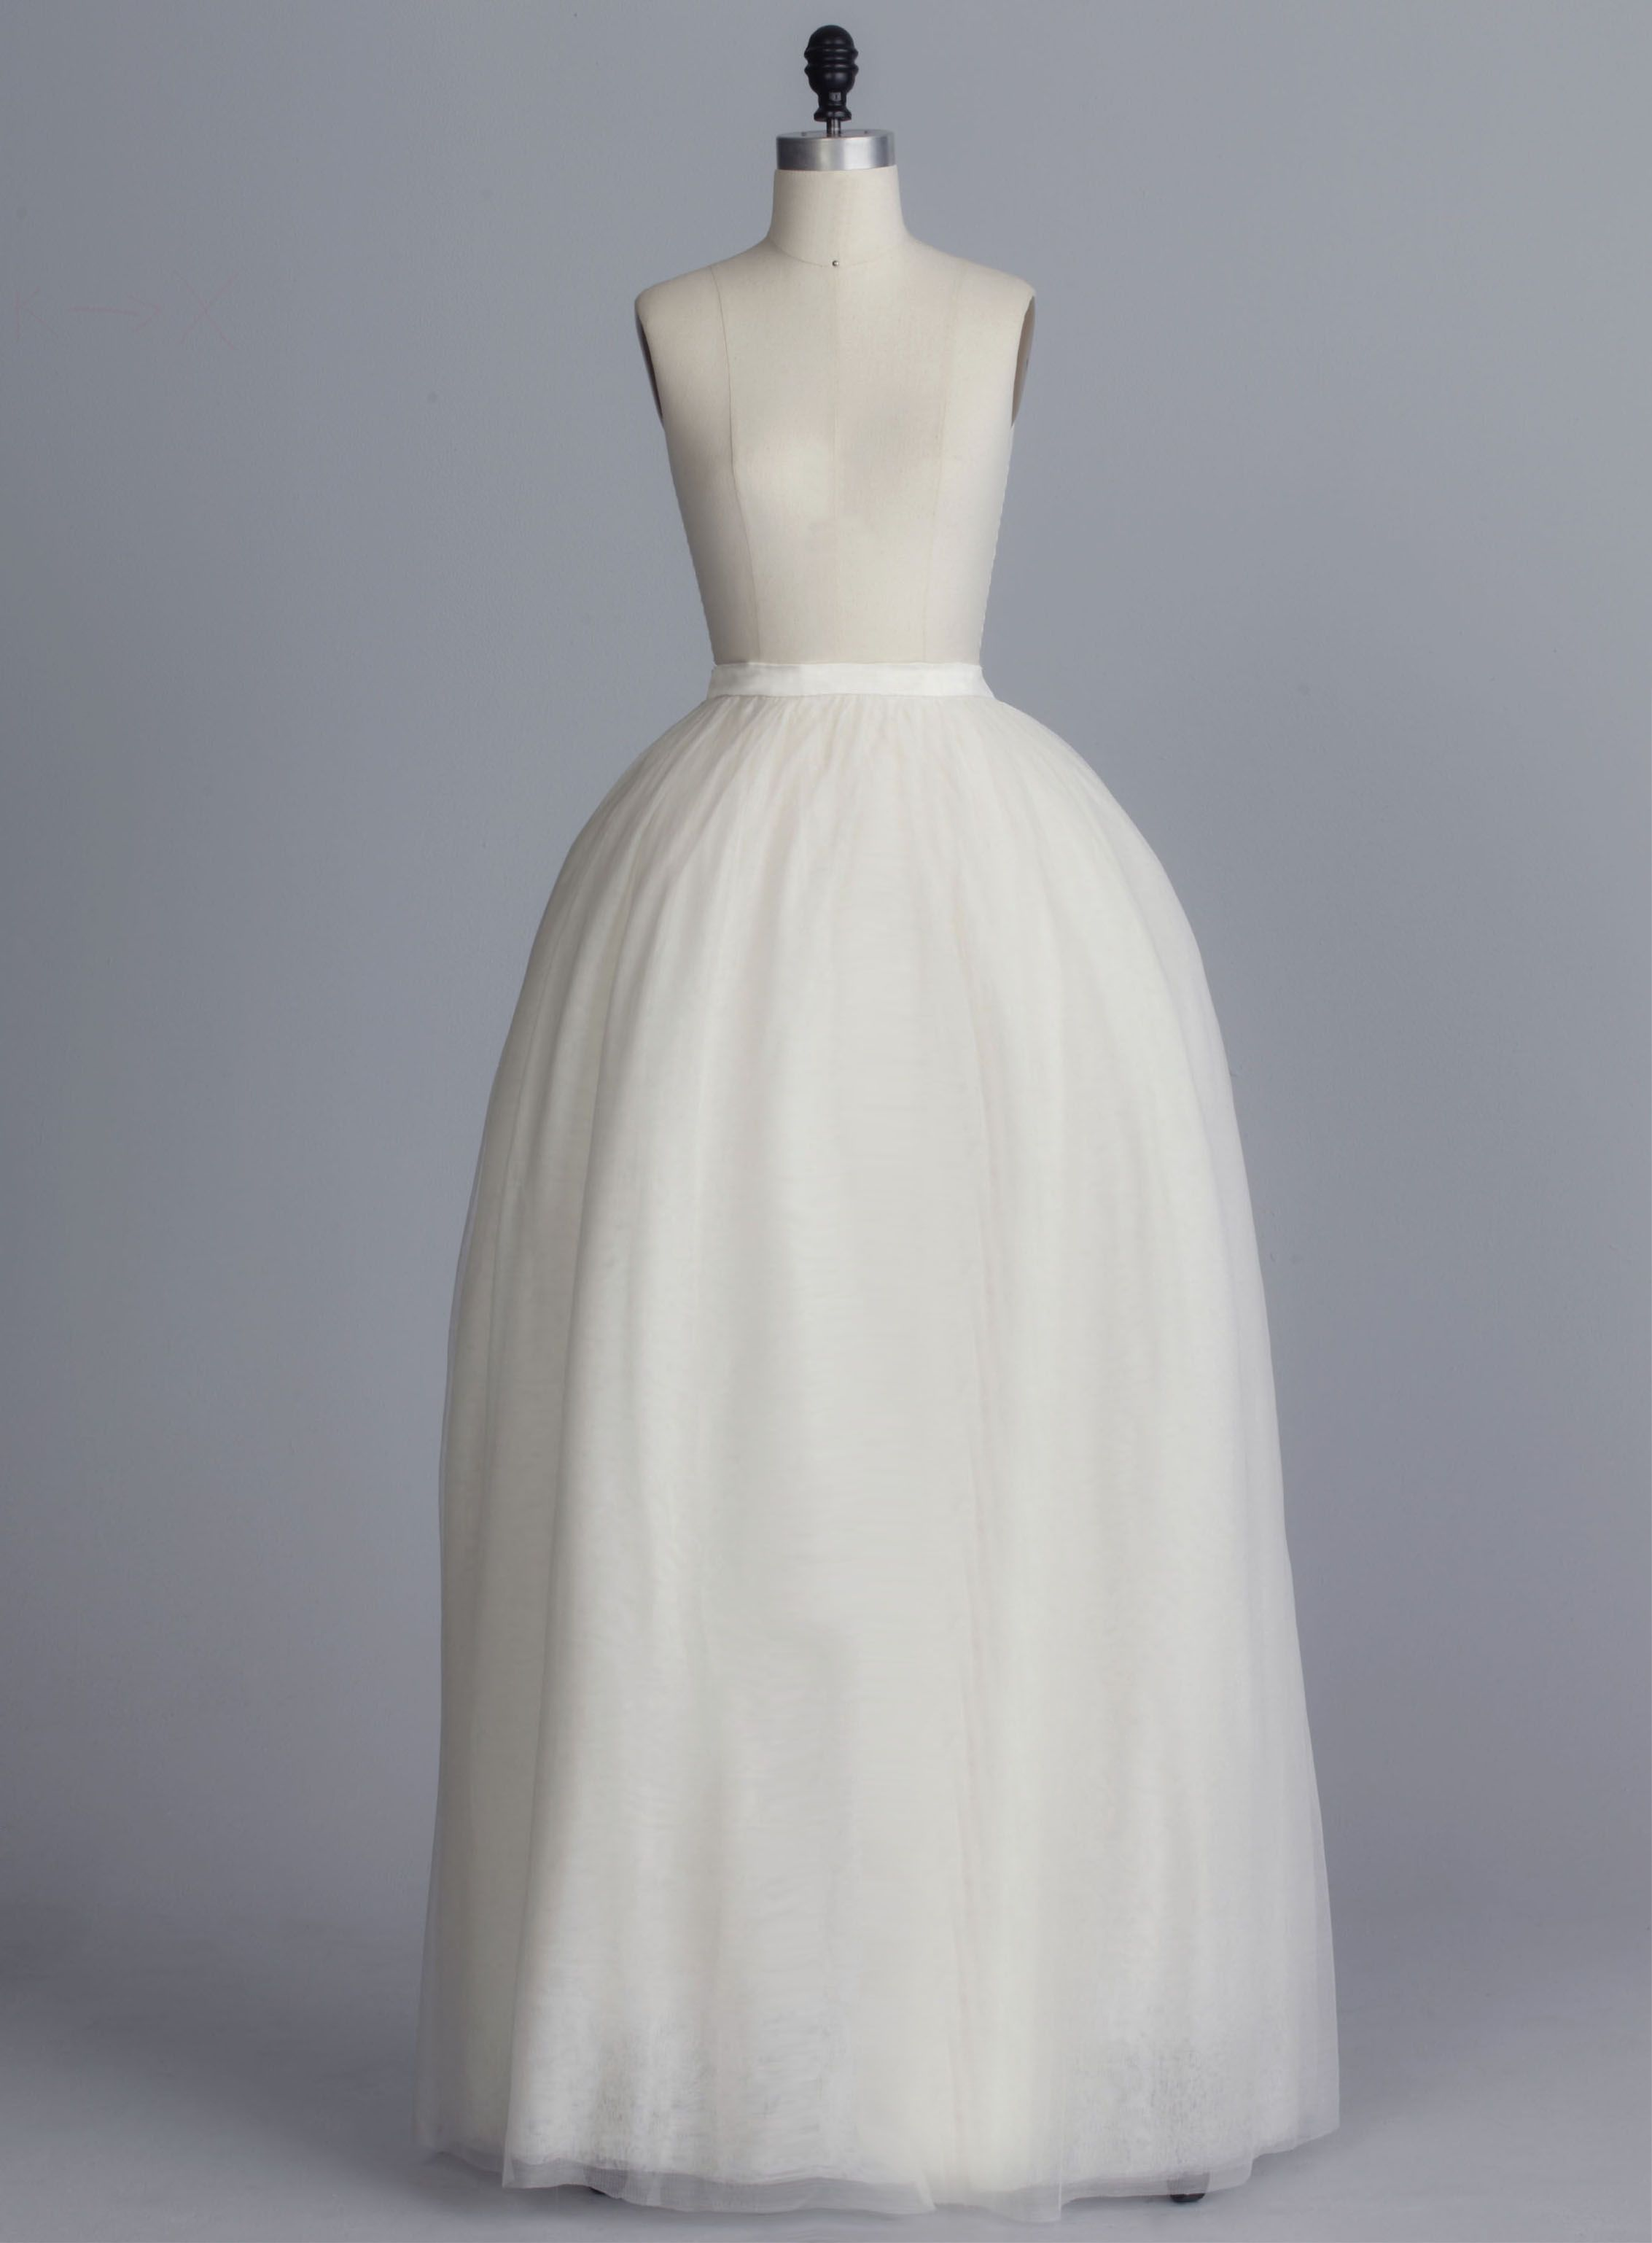 d2bc20a83 Della Giovanna Colbie Skirt- Off-White Silk Tulle Ball Gown Gathered Skirt  with Satin Waistband. Bridal Separates. Wedding Gown